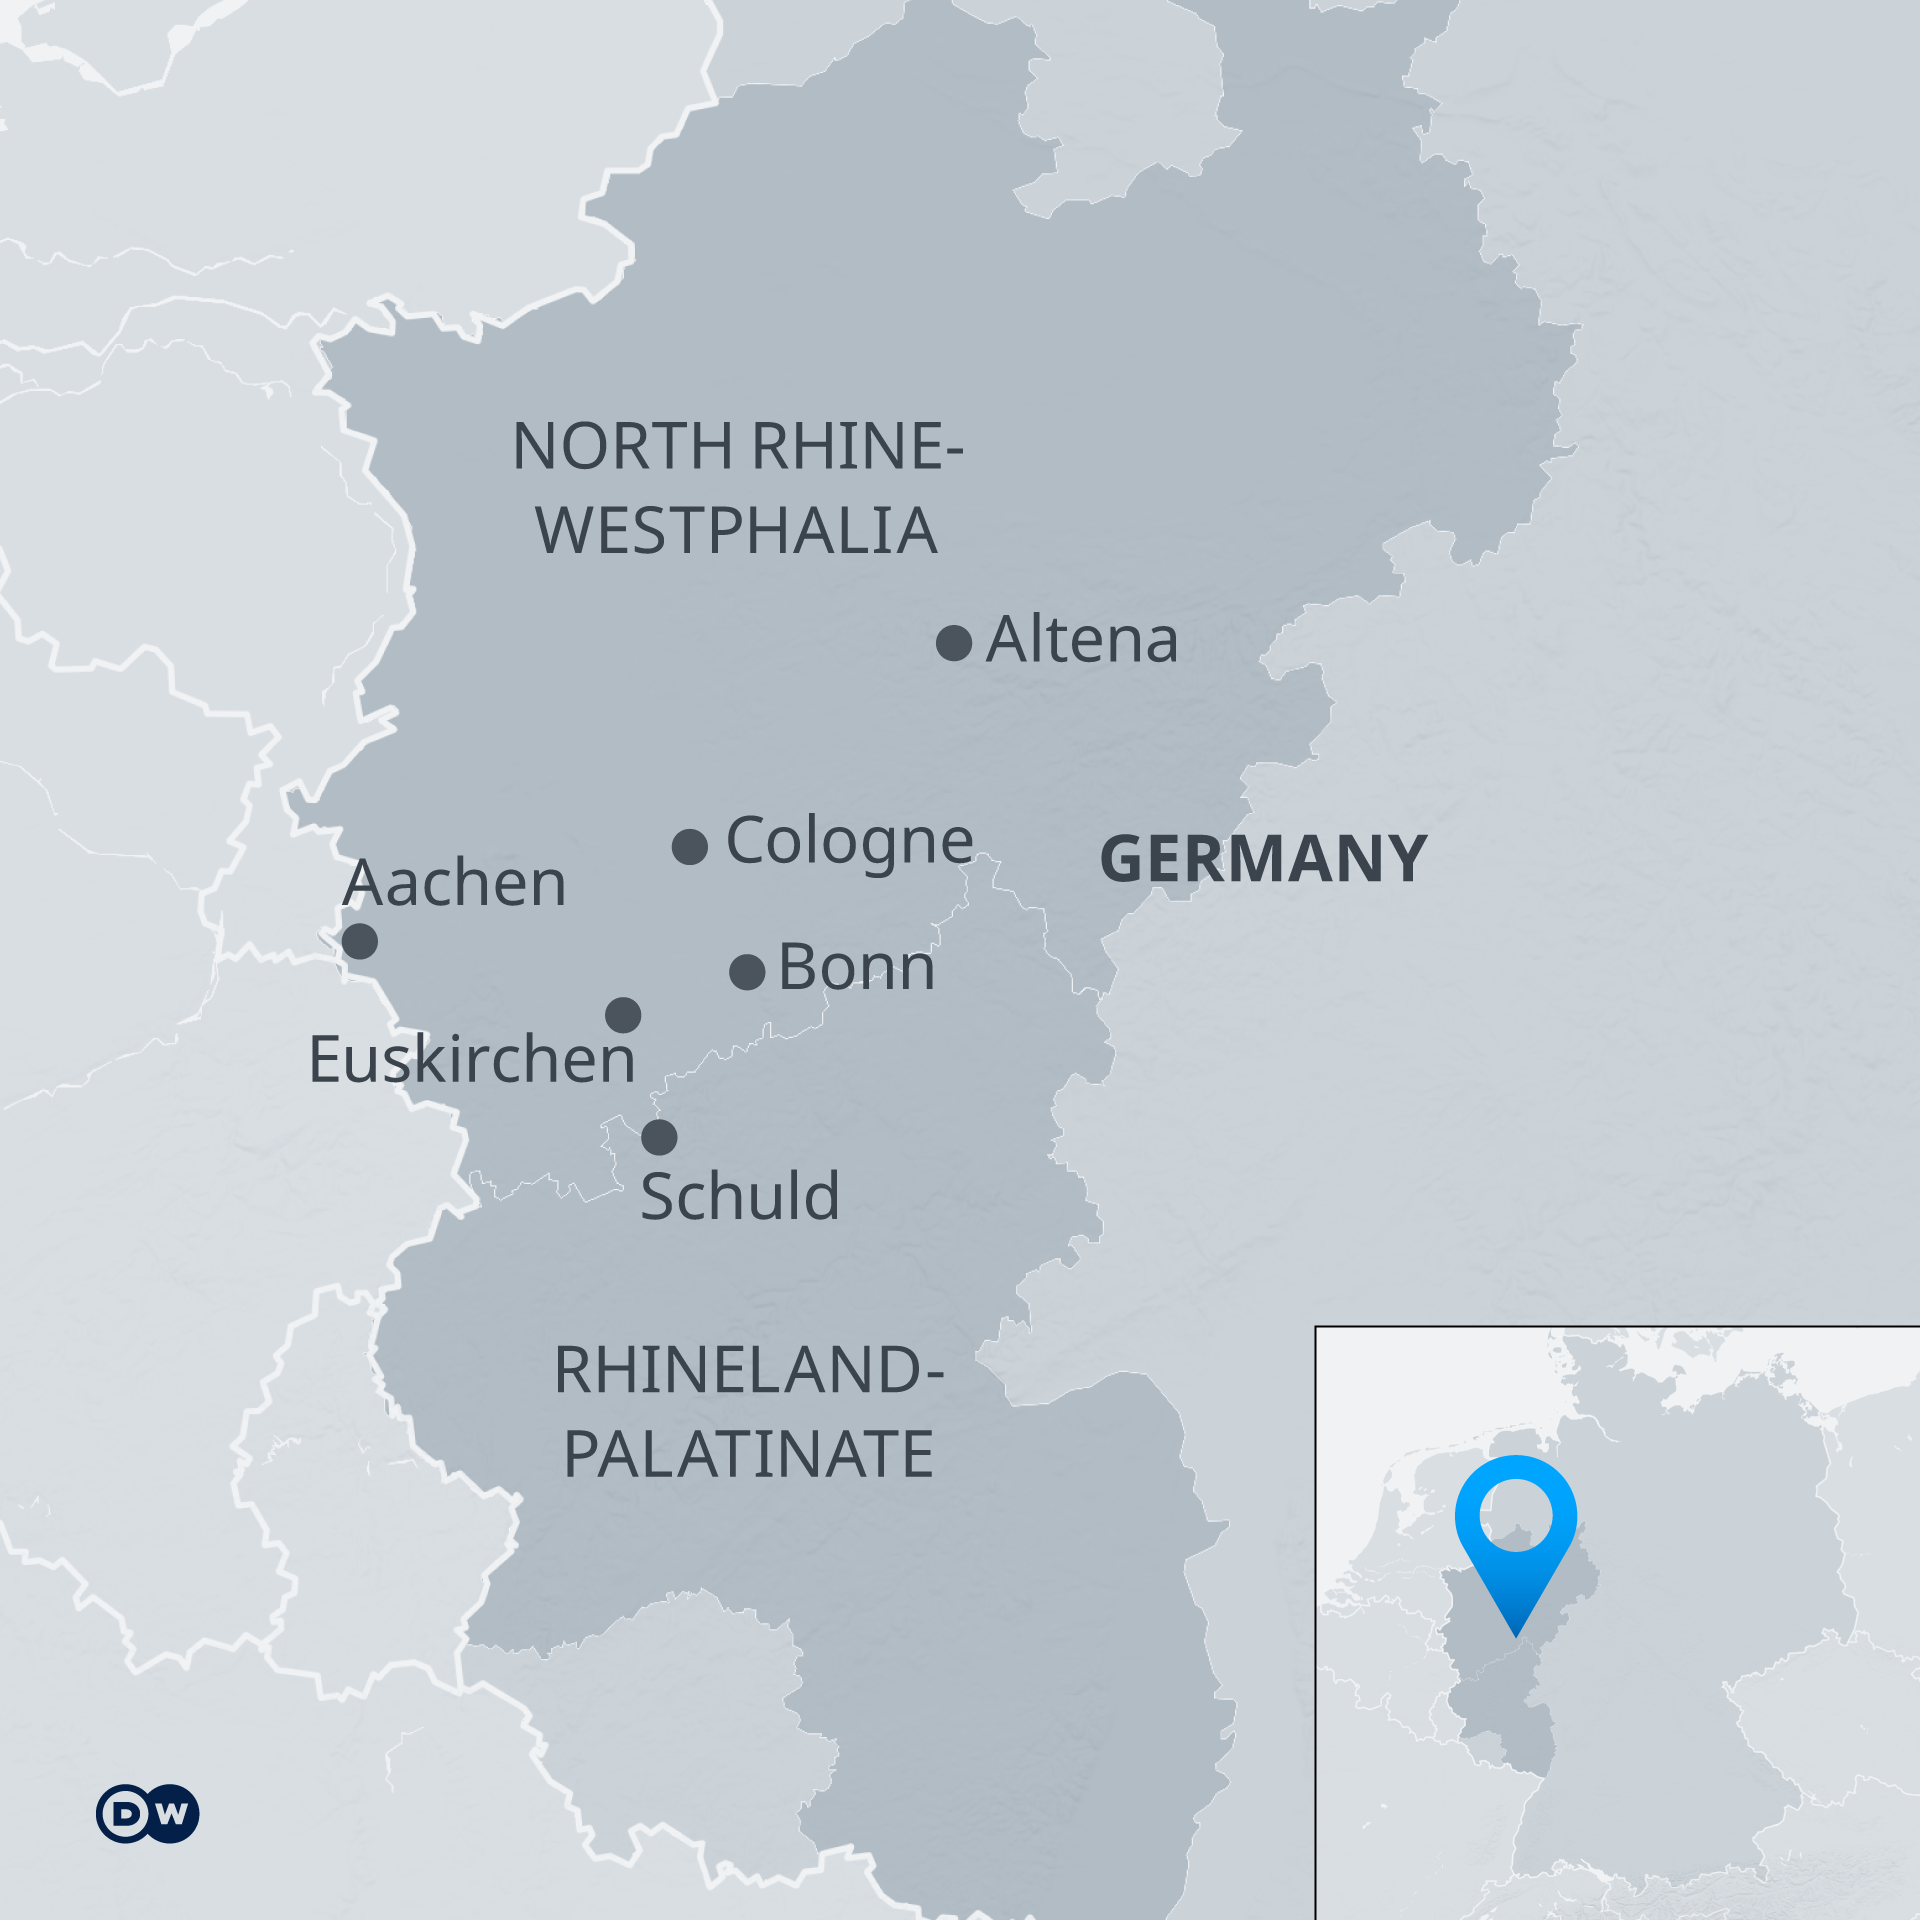 An infographic showing the areas most affected by the floods, in North Rhine-Westphalia and Rhineland-Palatinate.